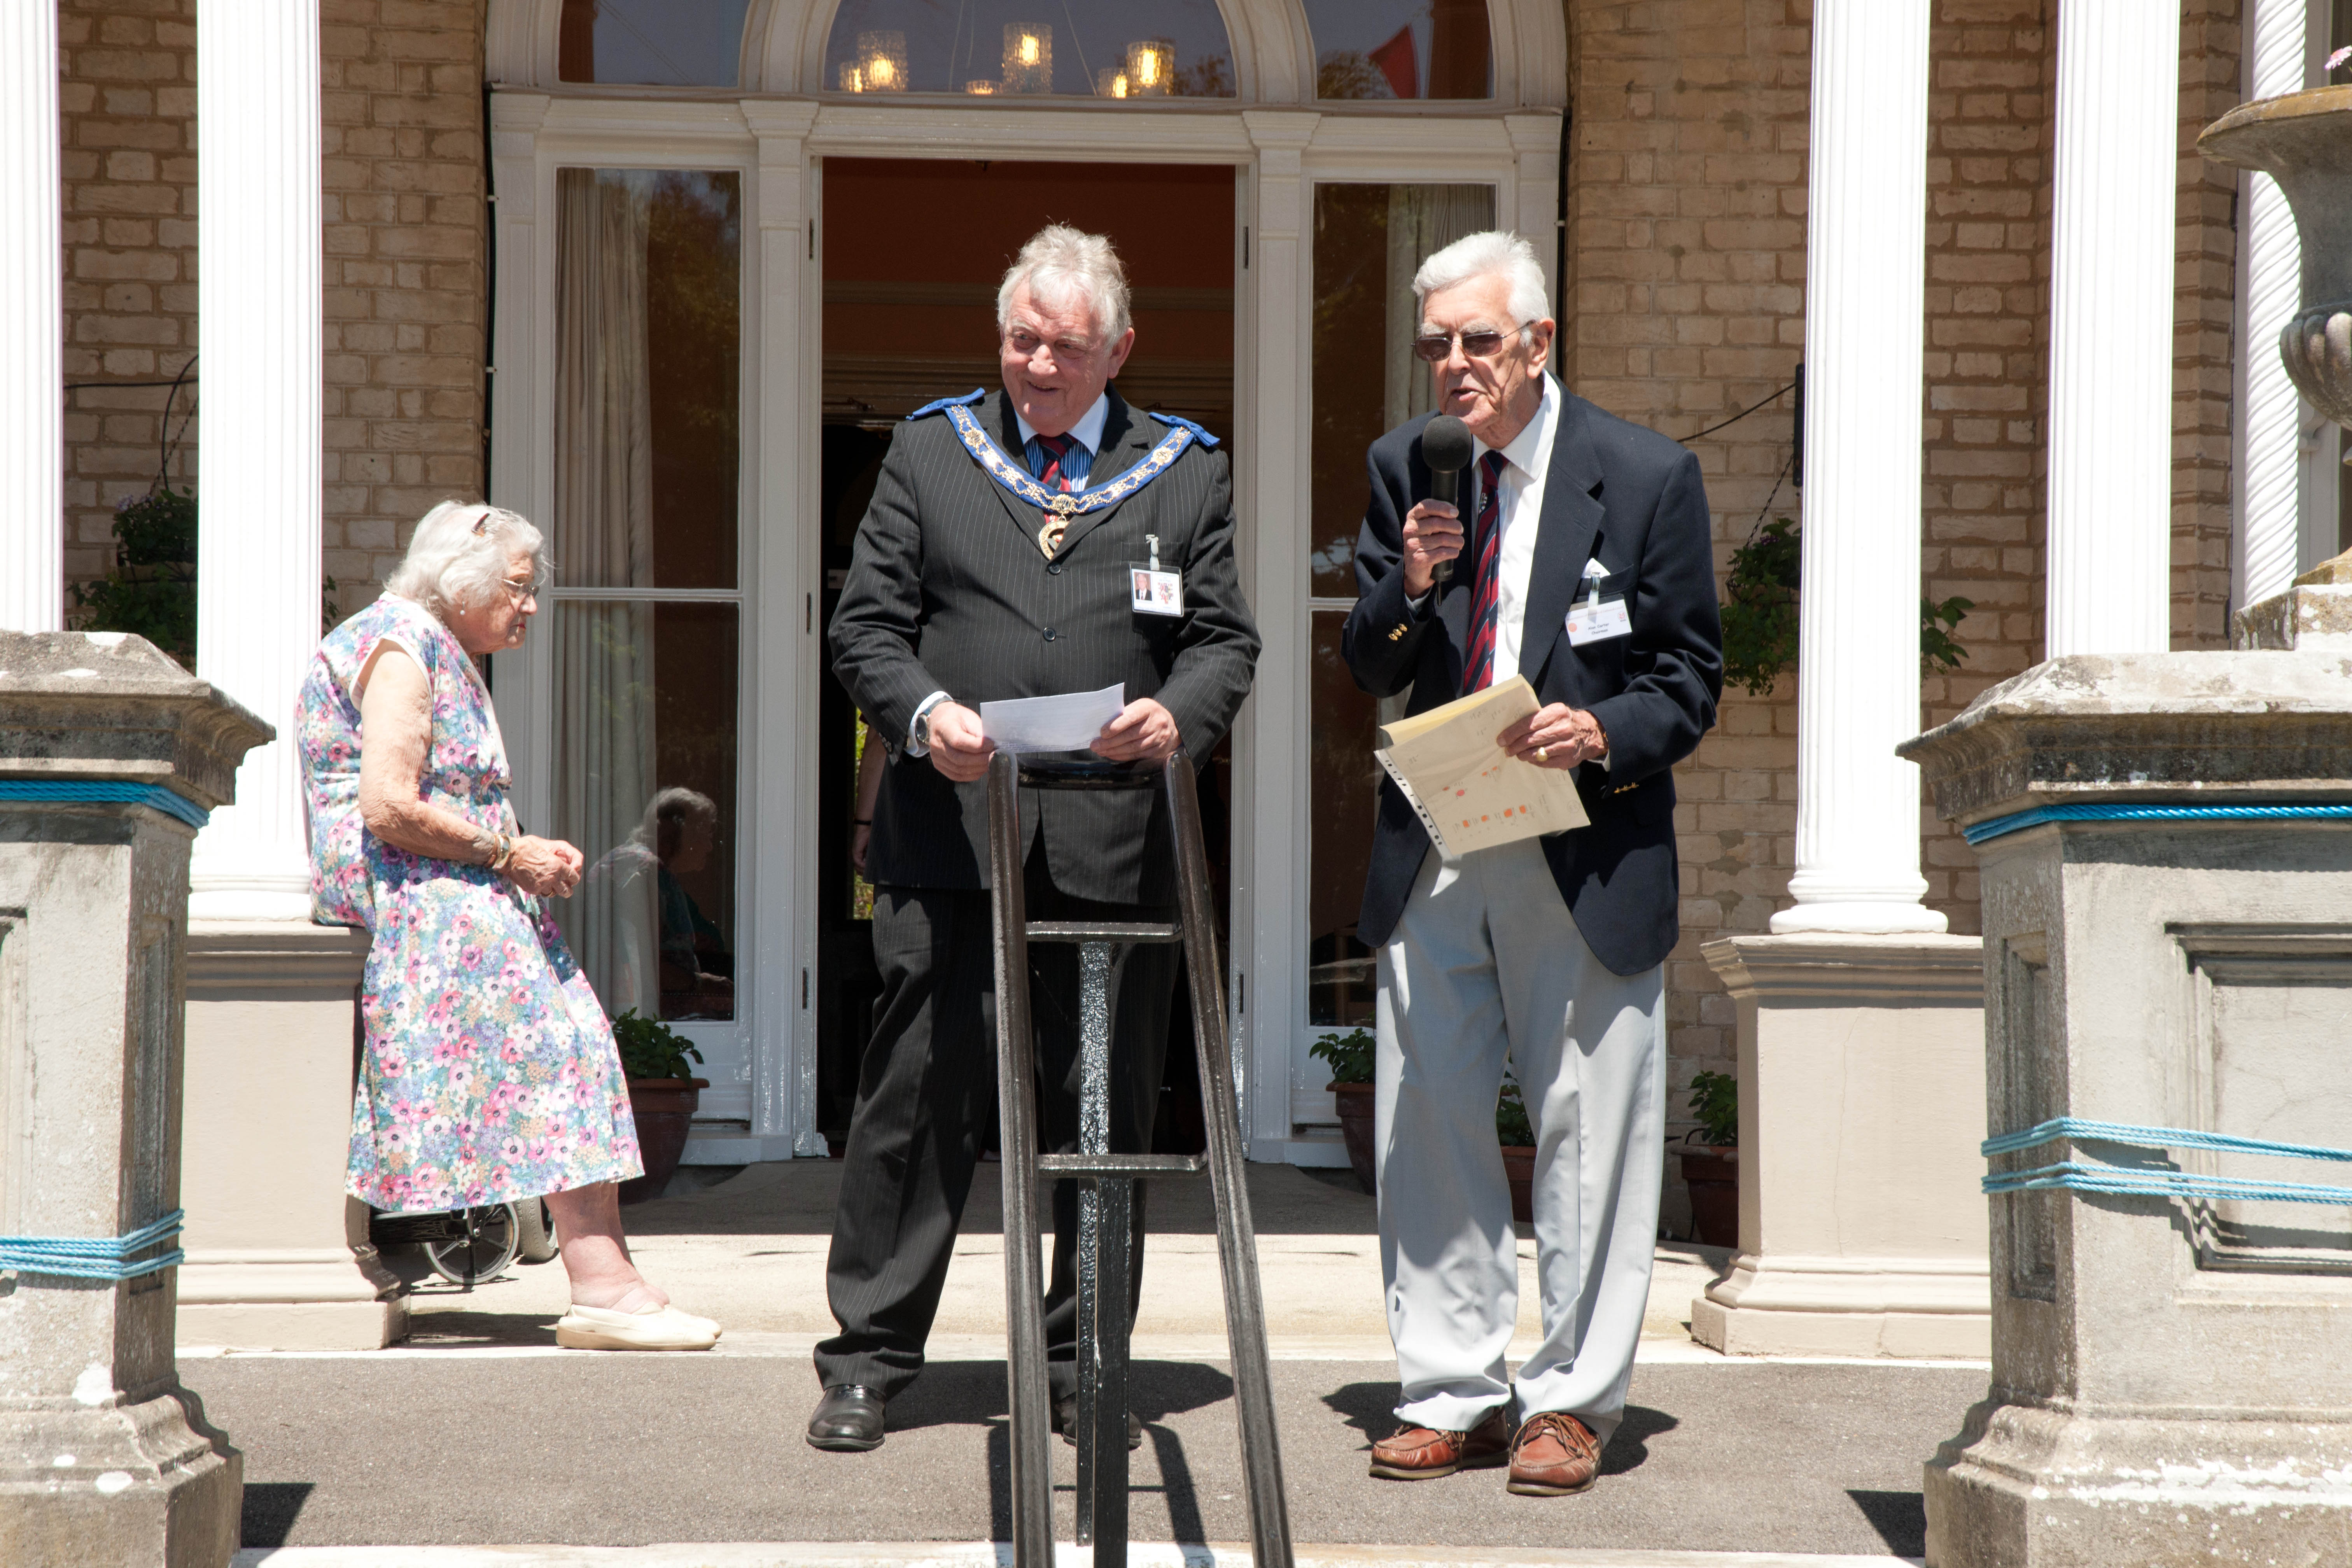 Our Chairman with W.Bro. Geoff Tuck opening the fete